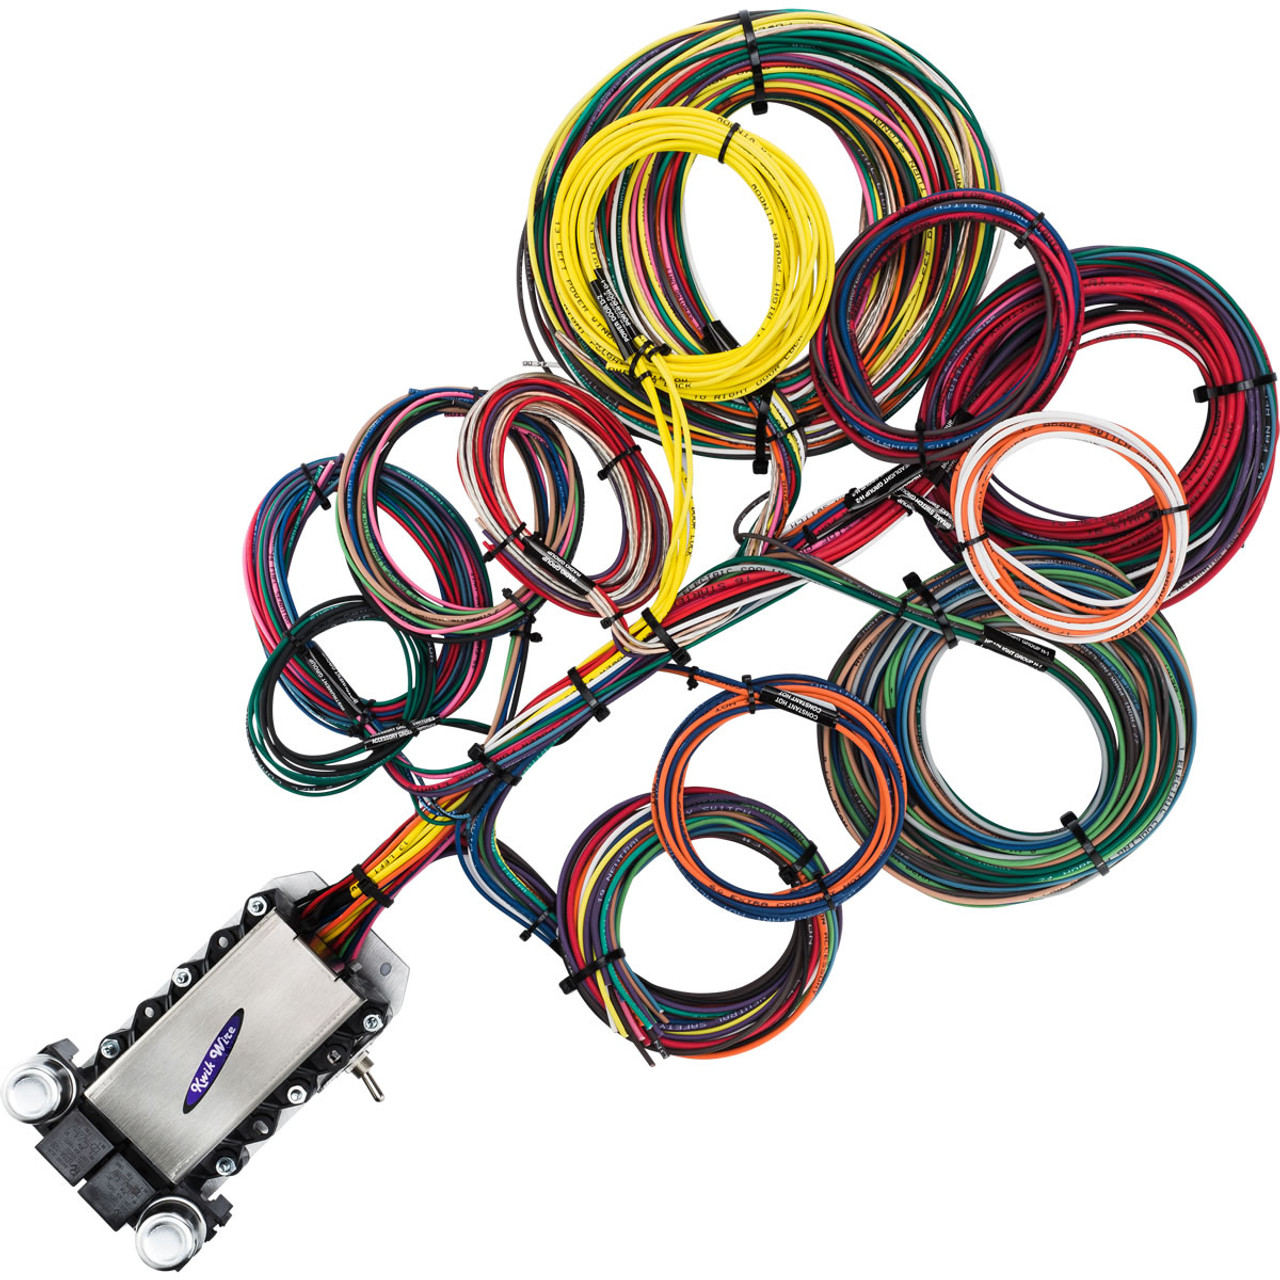 22 Circuit Wire Harness - KwikWire.com | Electrify Your Ride